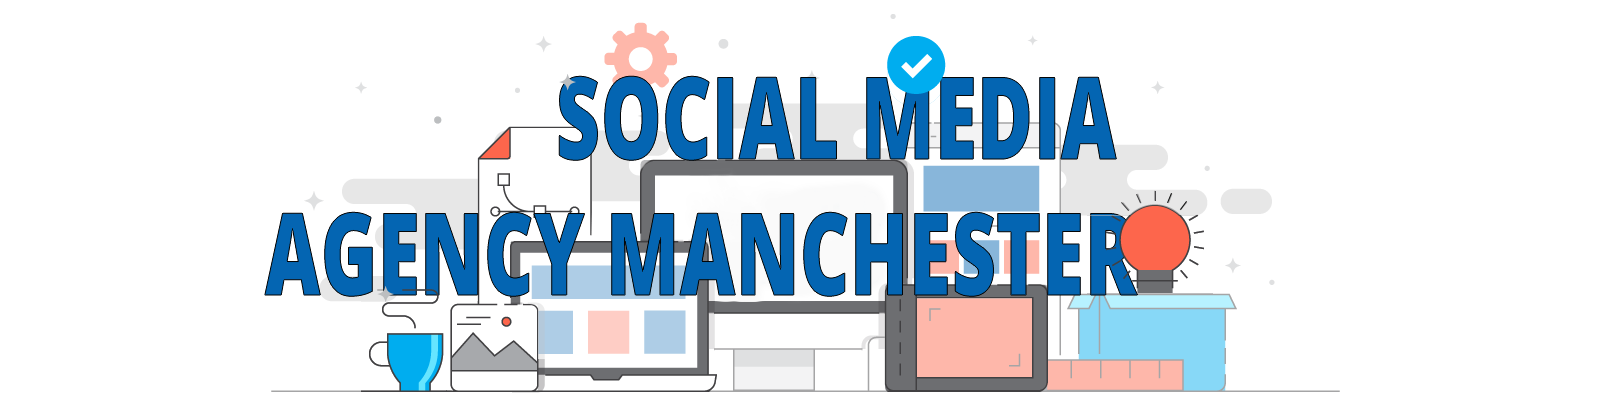 Award-Winning Social Media Agency Manchester